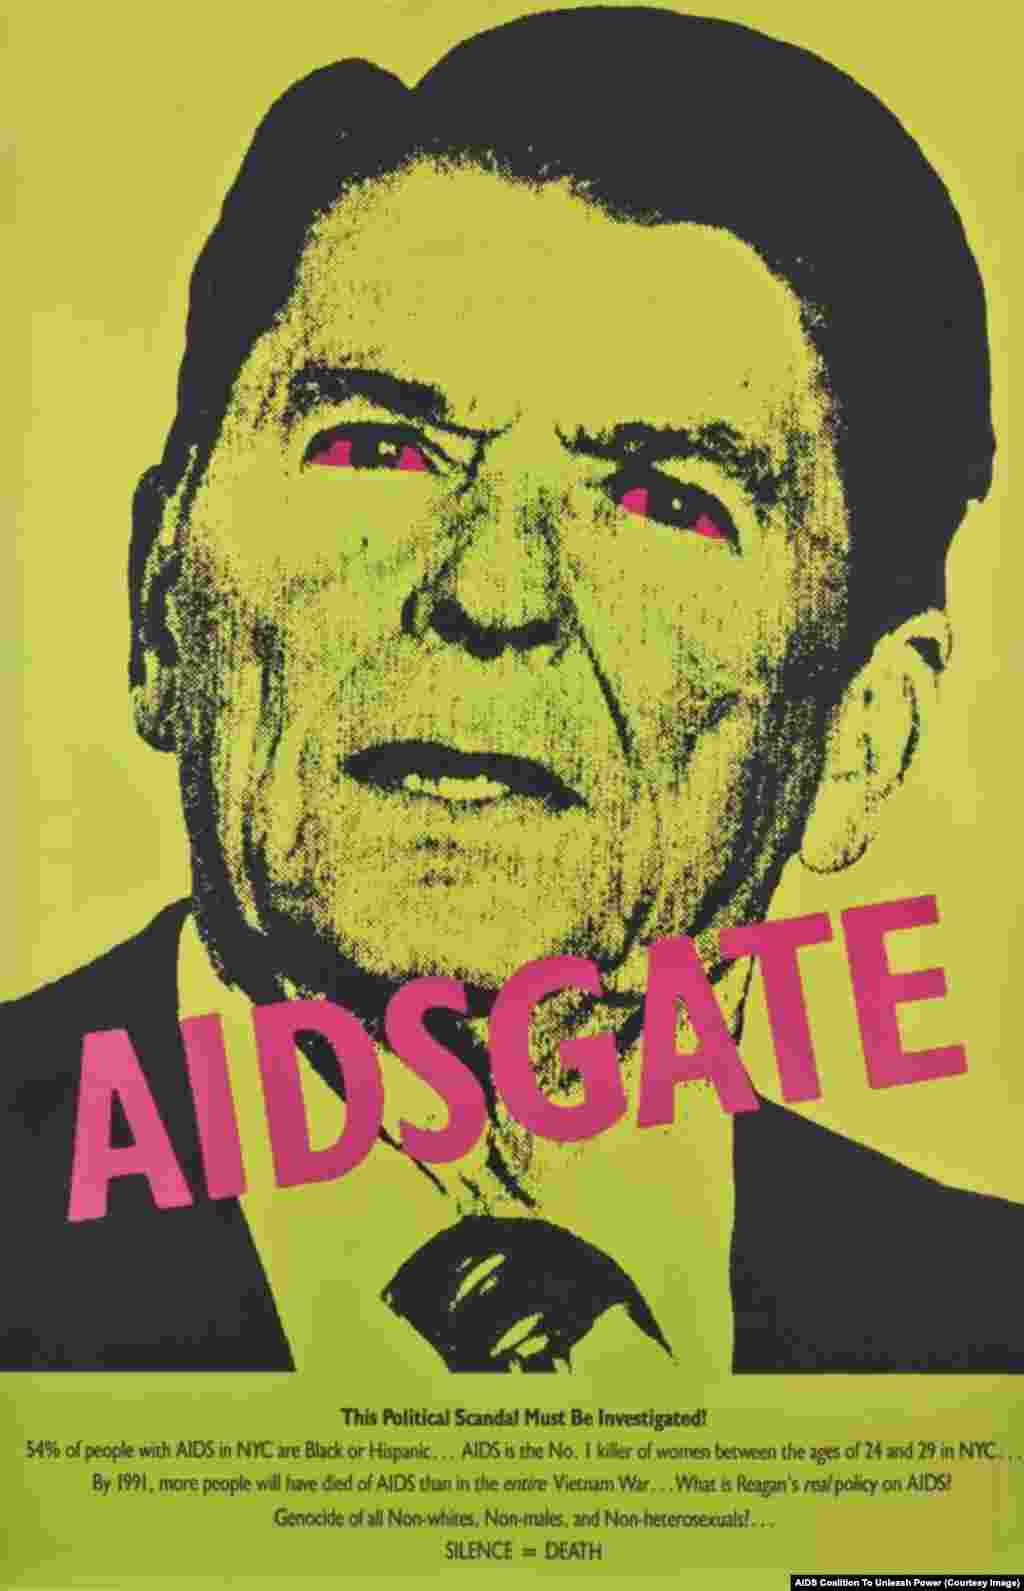 A 1987 poster by the AIDS Coalition To Unleash Power demands that U.S. President Ronald Reagan address the AIDS epidemic.